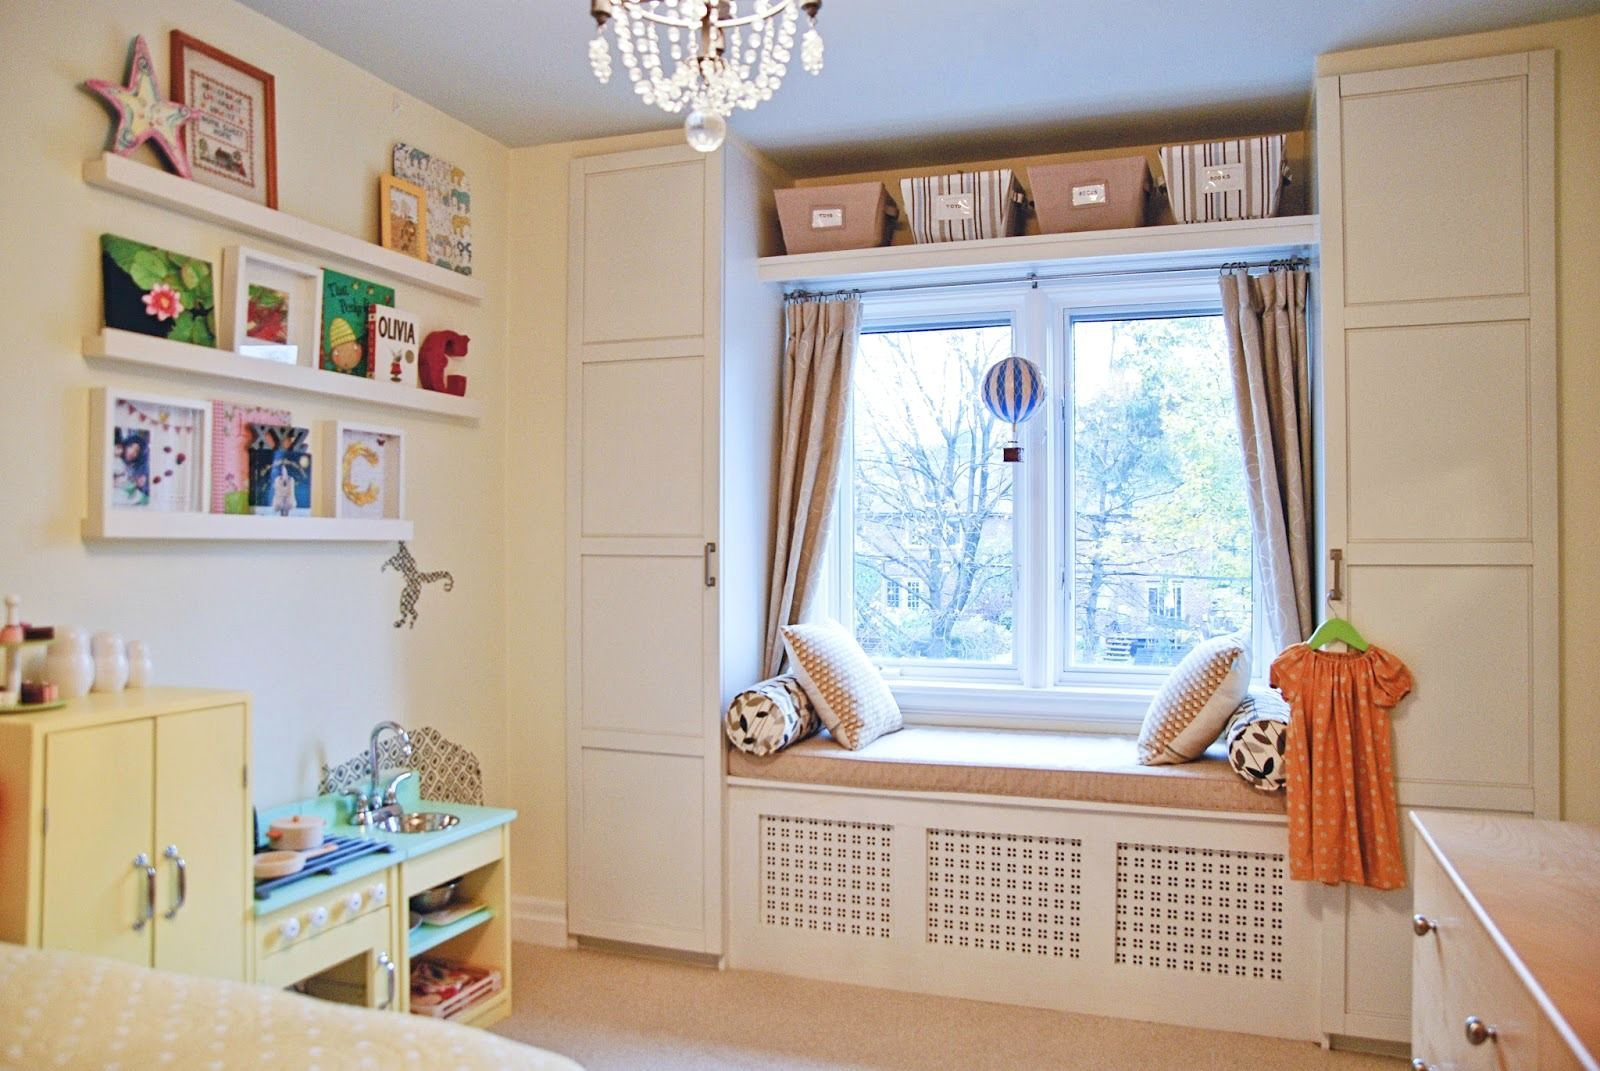 5 Clever Built-Ins Starring IKEA Shelves